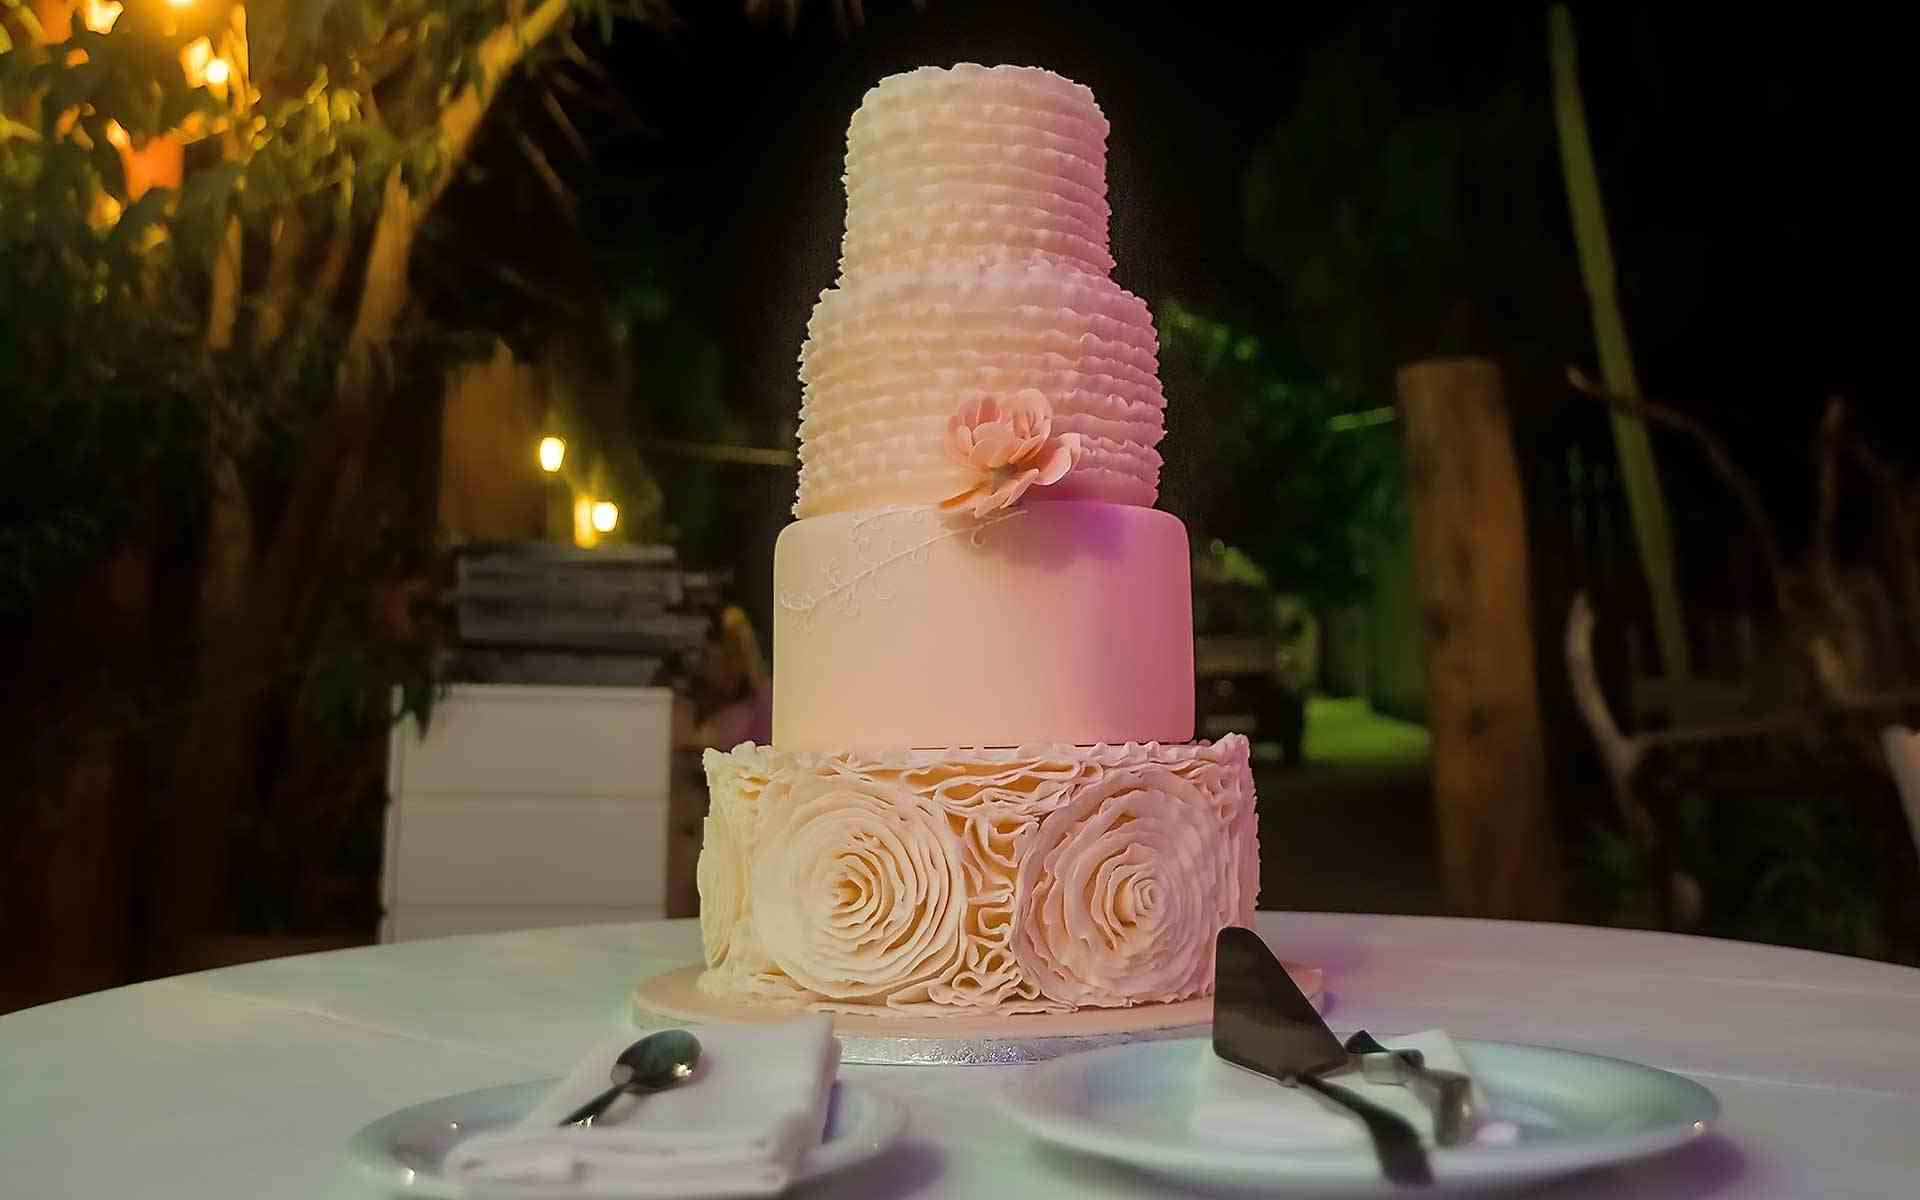 Gorgeous-And-Delicious-Wedding-Cake-by-Diamond-Events-Wedding-Event-planning-services